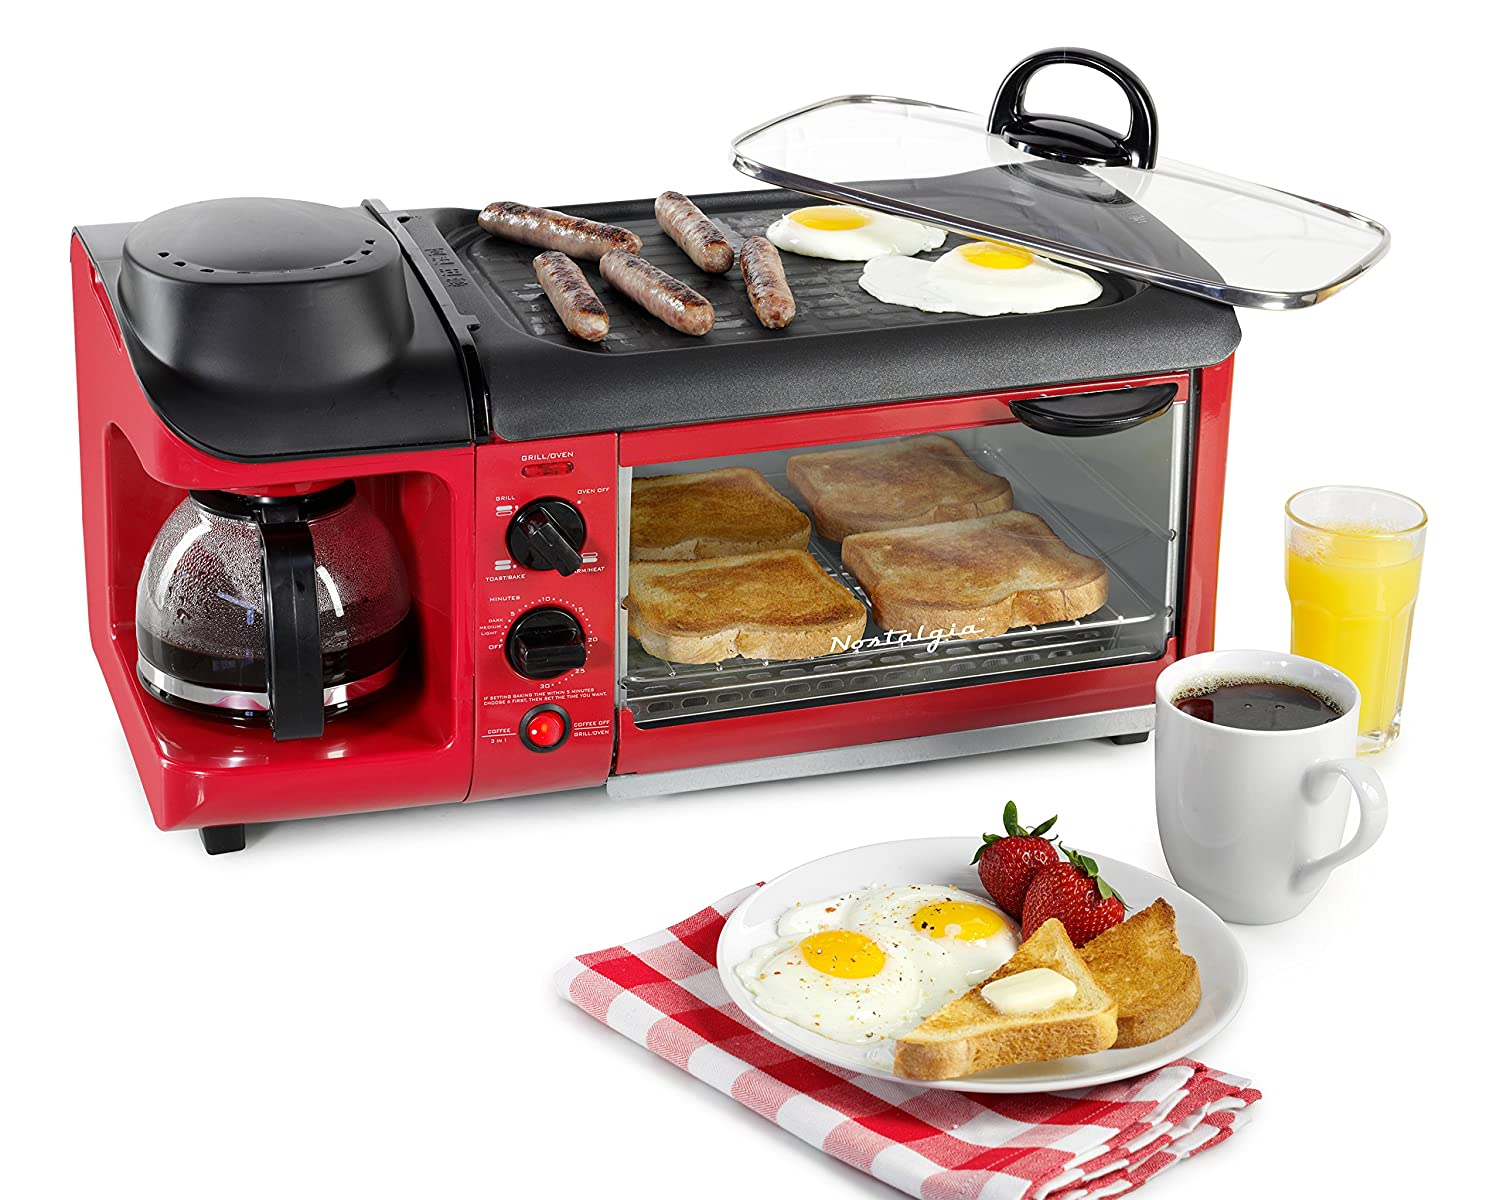 Nostalgia BSET300RETRORED 3-in-1 Family Size Breakfast Station, Red